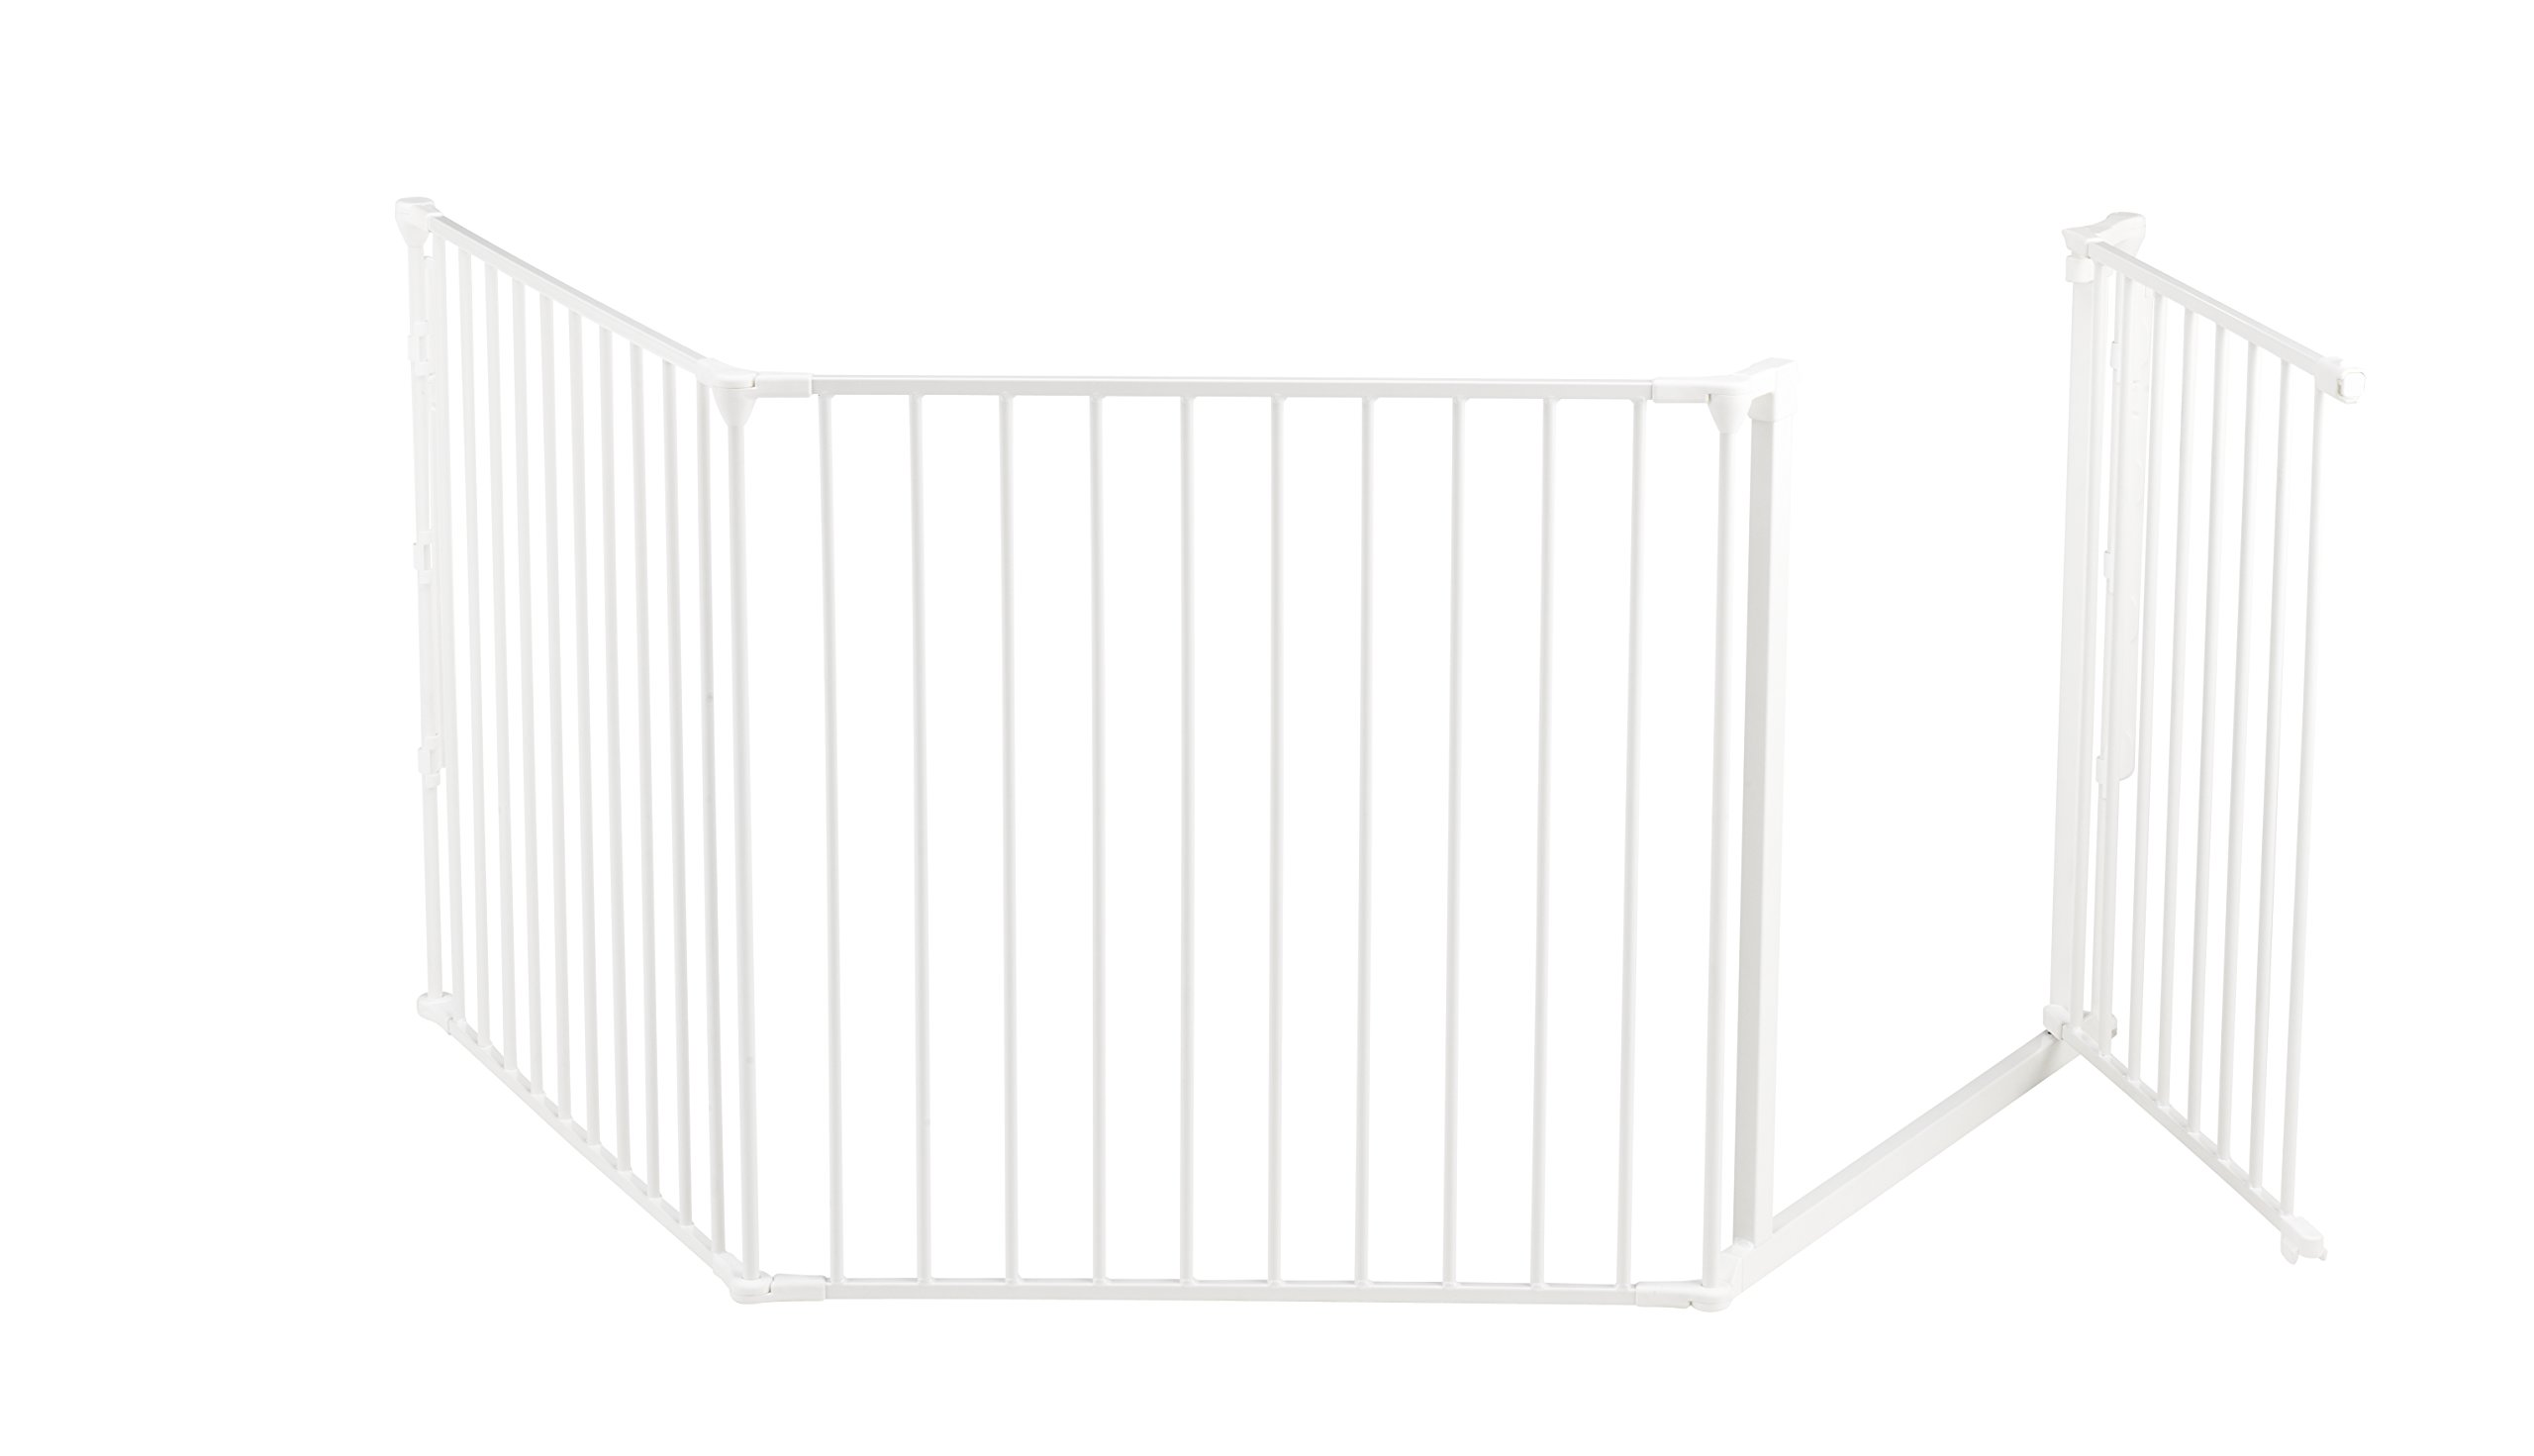 BabyDan Configure (Large 90-223cm, White)  Only configure system fulfilling newest European safety standard Multi purpose room divider and gate for wider openings Flexible and easy to fit 6